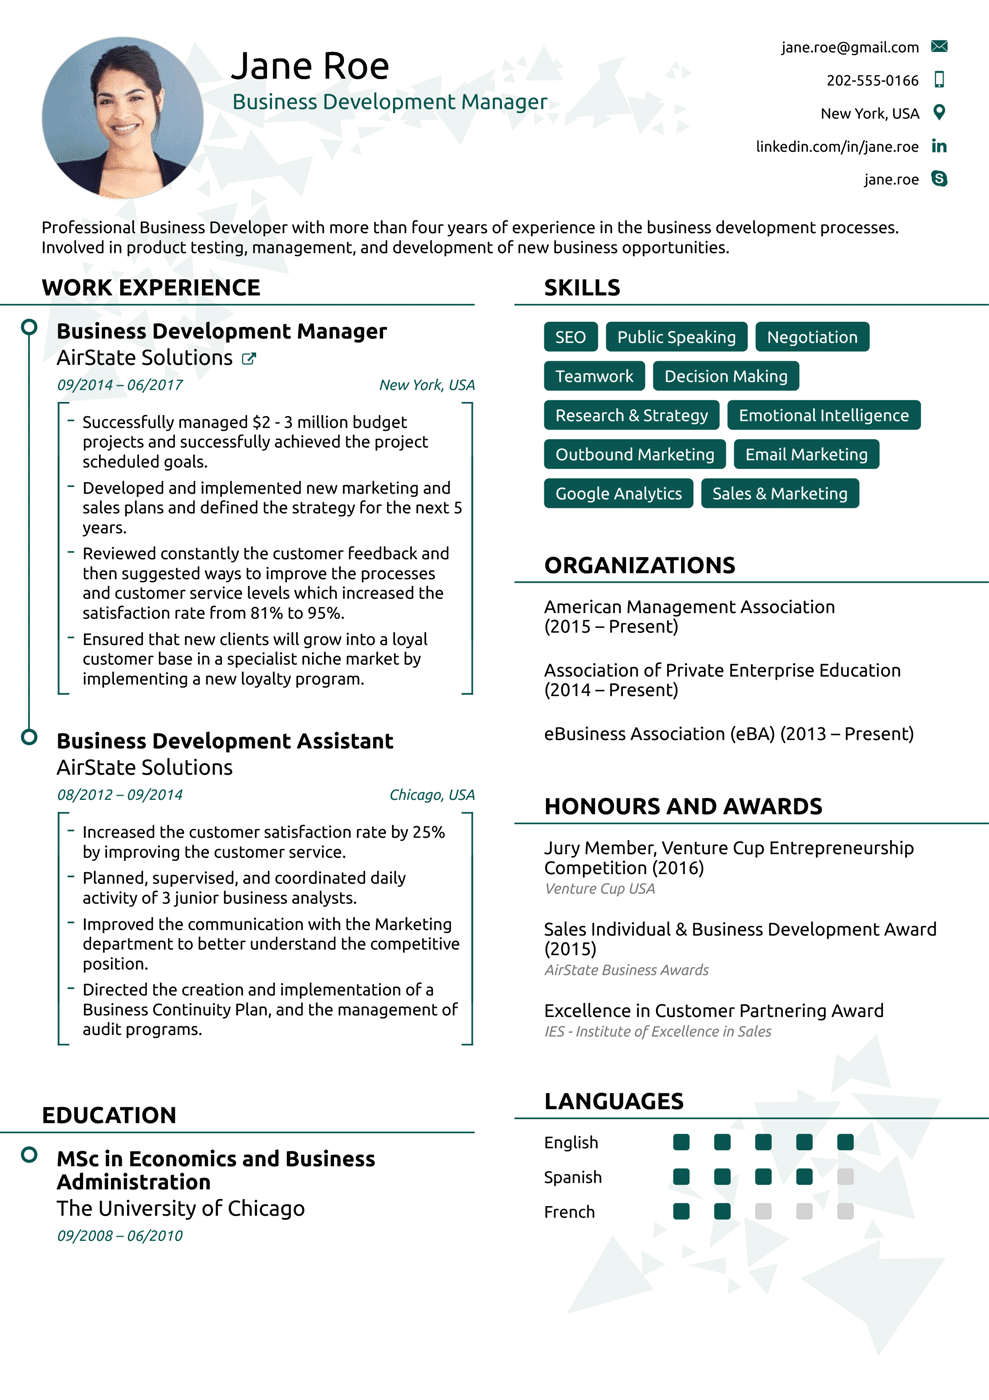 template 2018 online resume template, graphic designer design objective in for fresh graduate civil engineer legal career